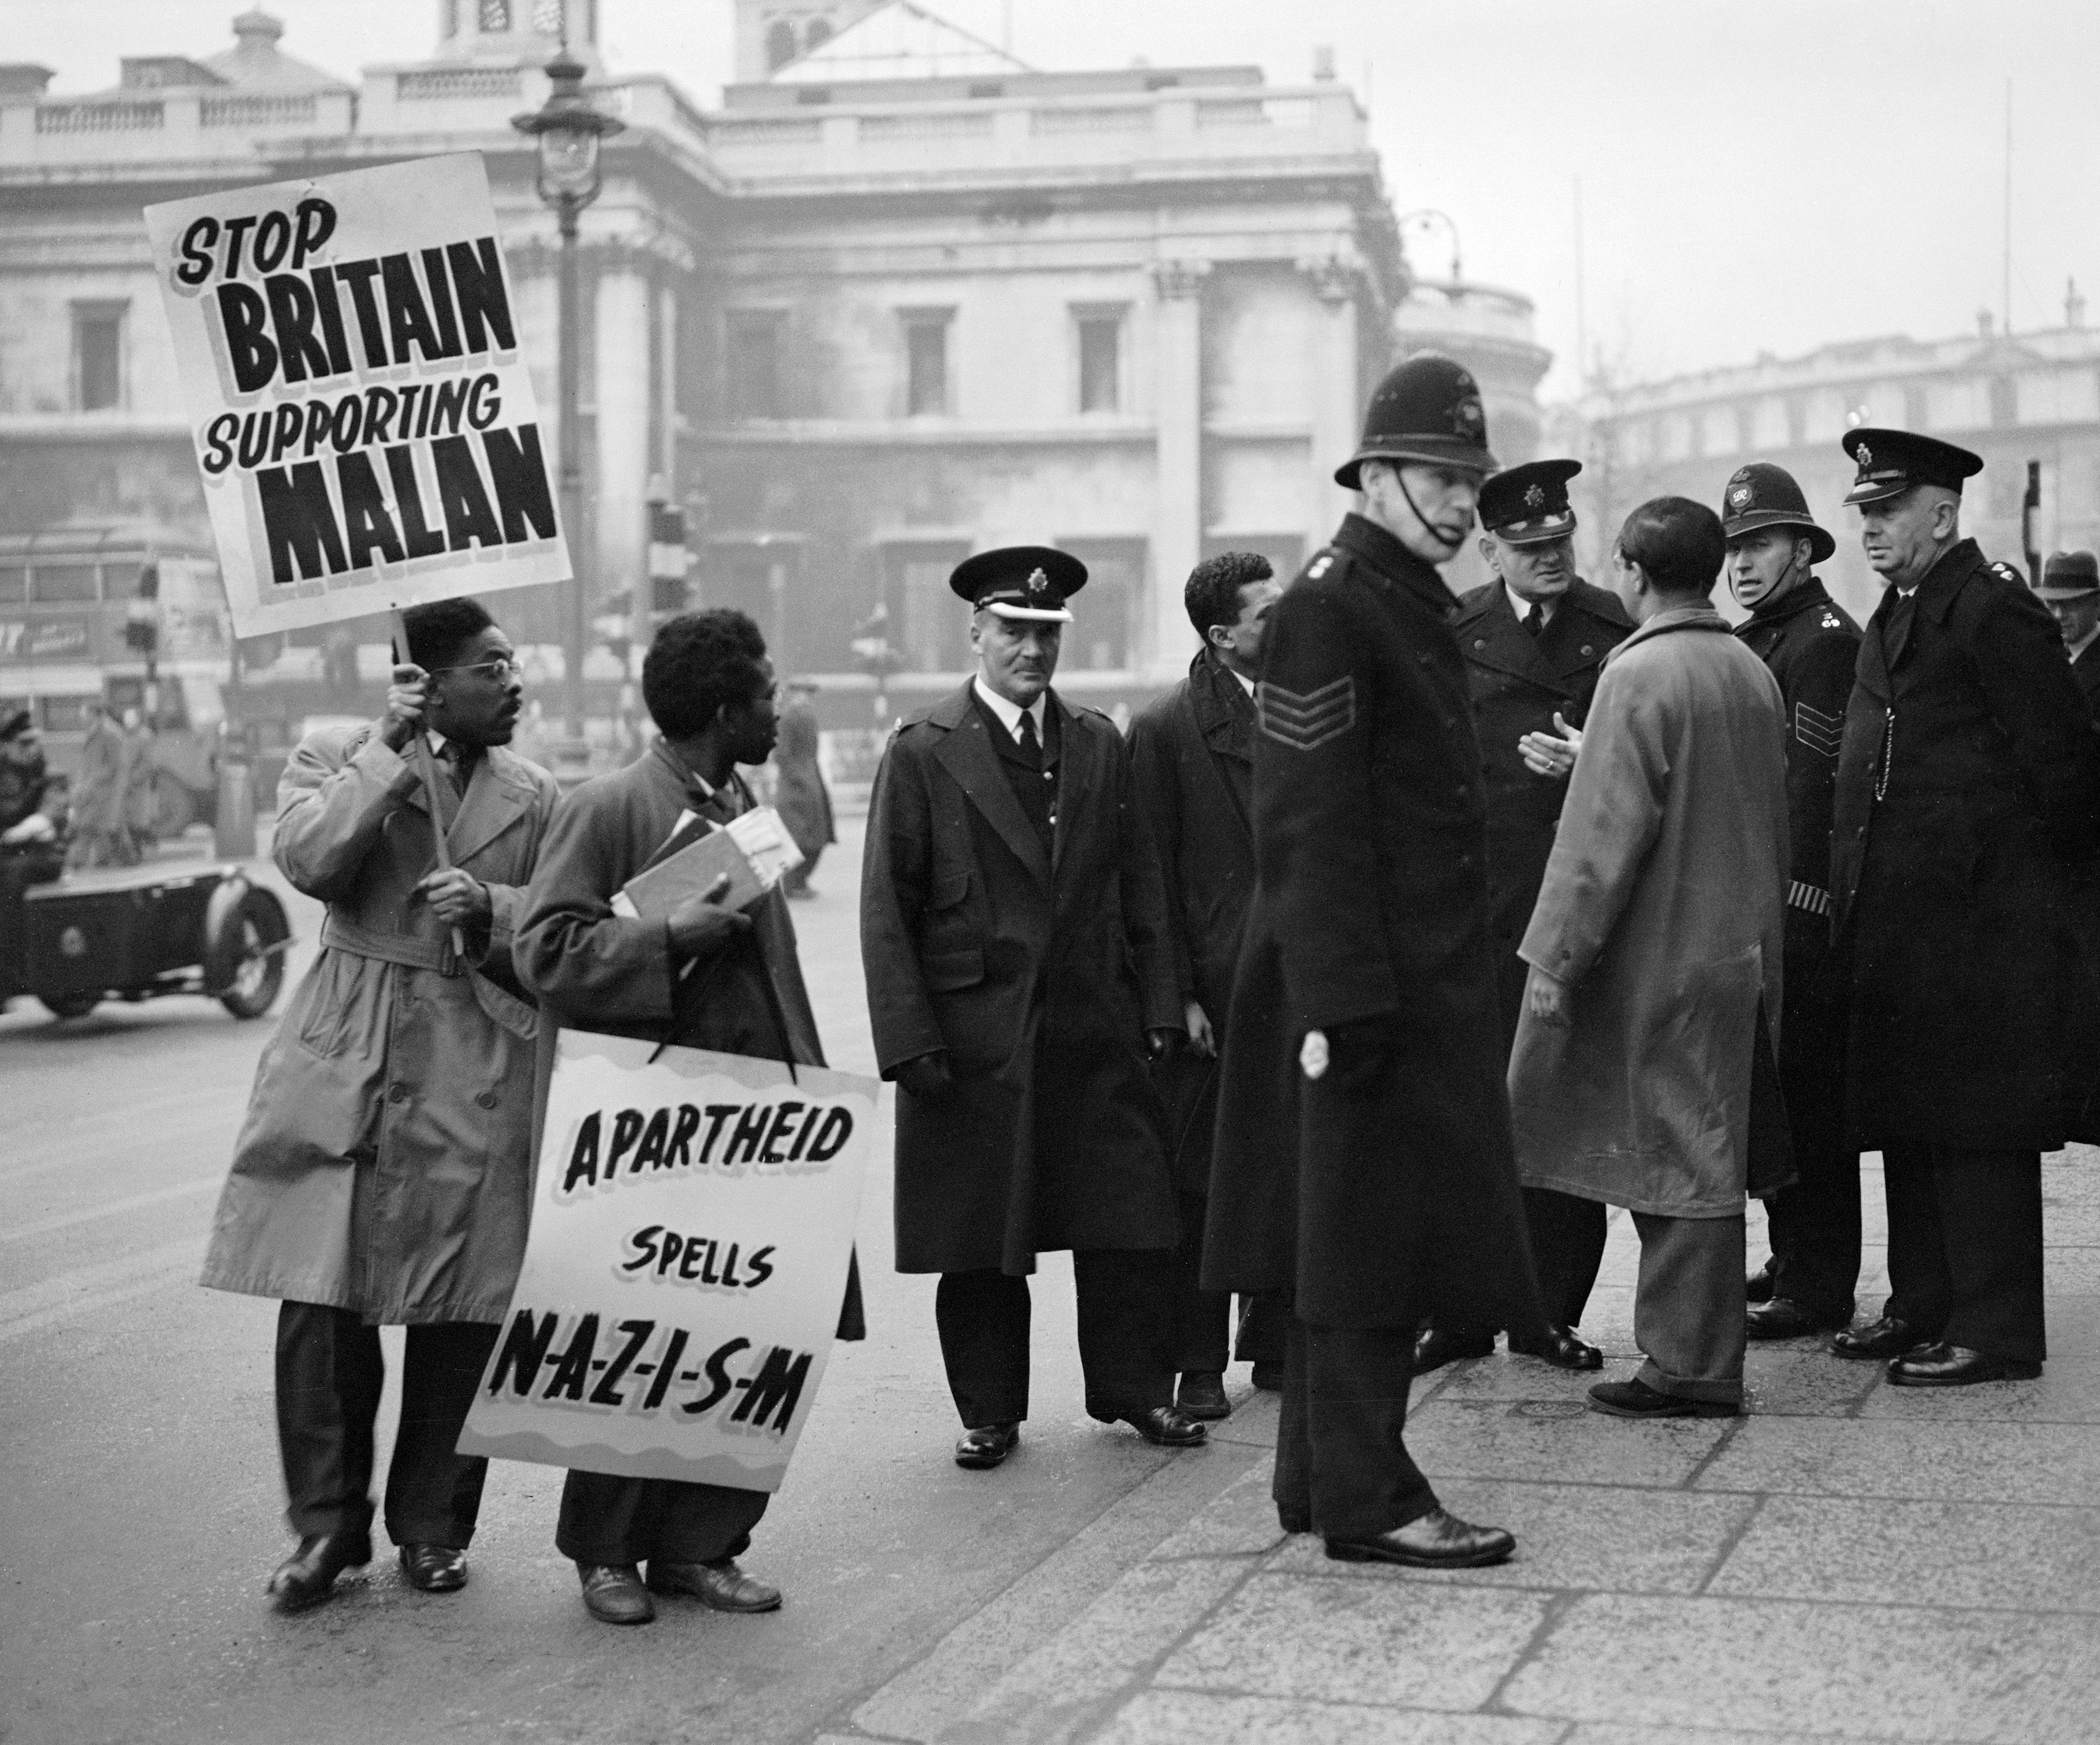 Another demonstration in Trafalgar Squre the following week. 19th Jan 1951.